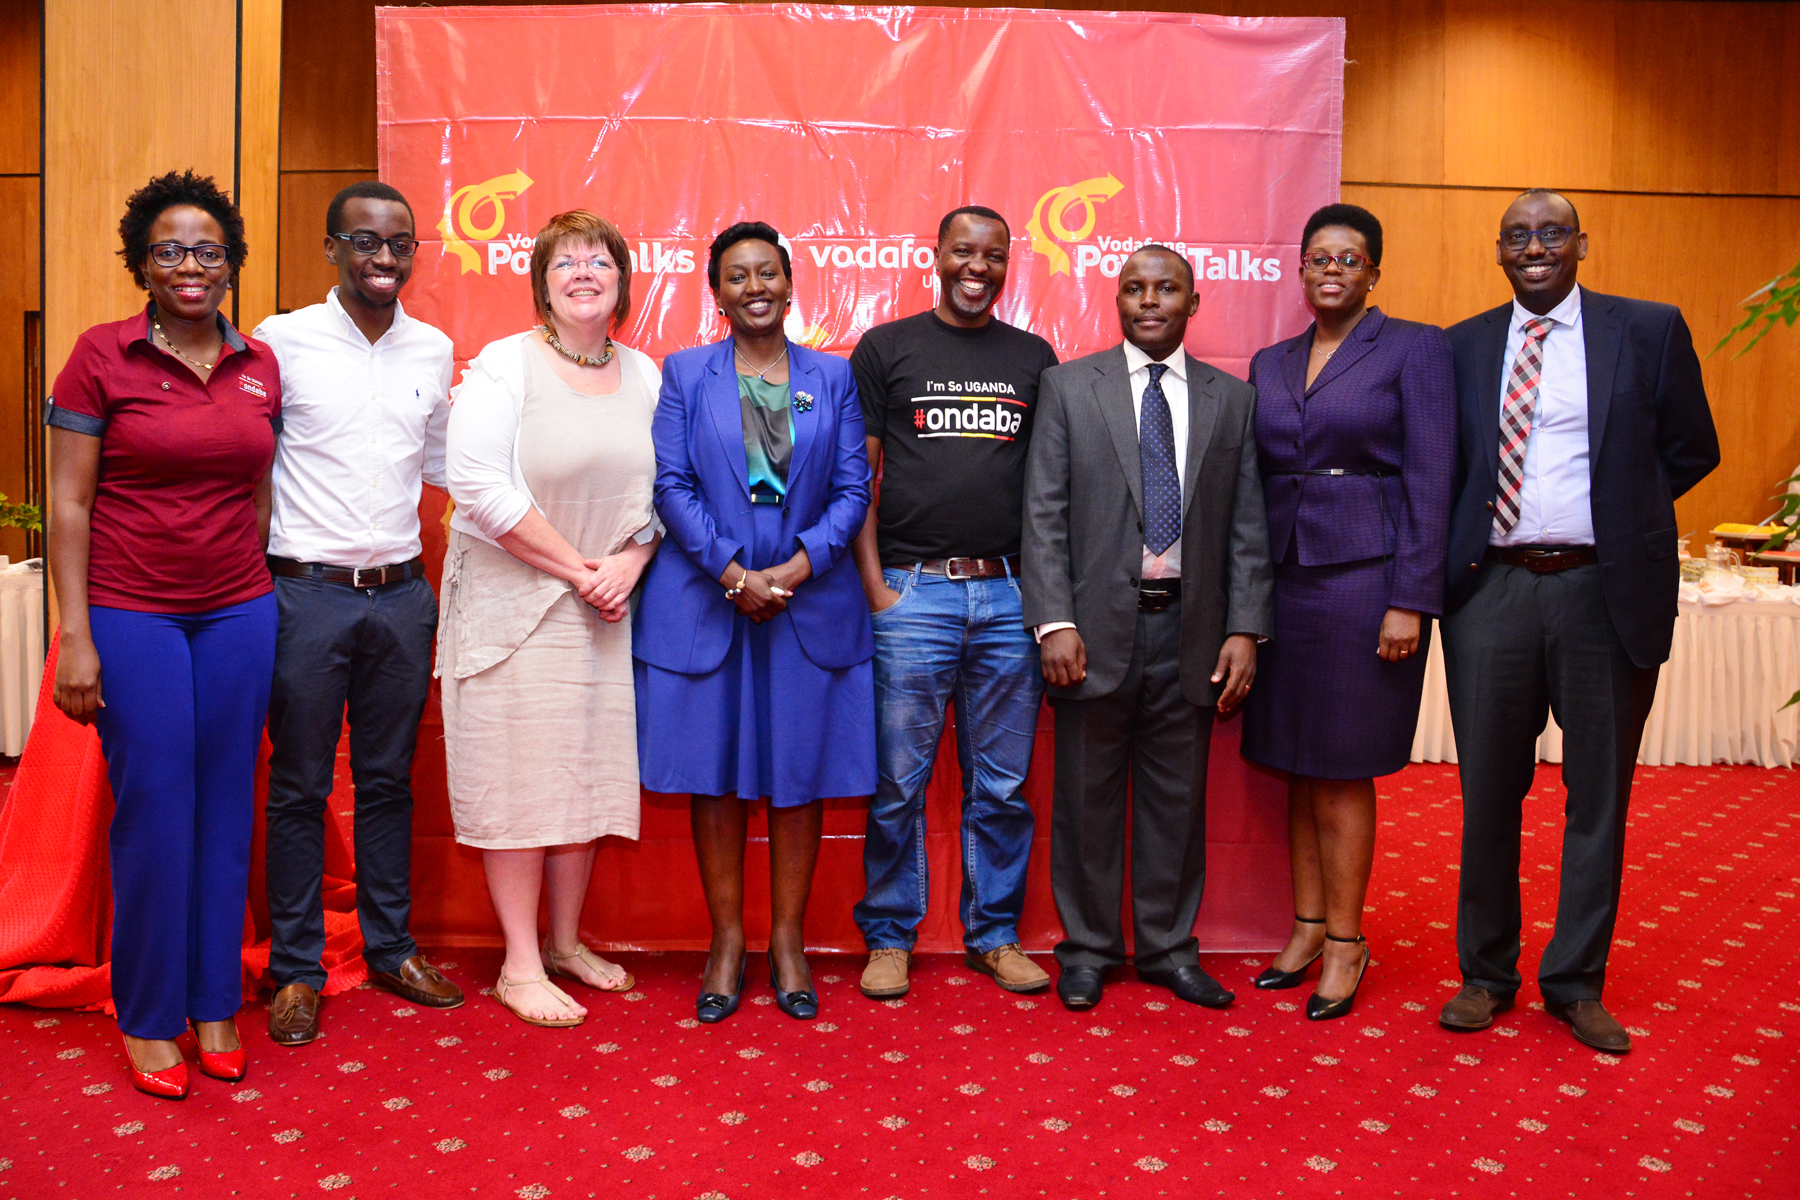 Derrick Sebbaale, the Chief Technical Officer of Vodafone Uganda and the Vodafone Head of Marketing Jackie Namara poses for a photo with Steven Asiimwe , Amos Wekesa, Rosett Rugambwa, Kelly MacTavish, Phillip Kalibwami, Belinda Namutebi, the panellists of the 5th Vodafone Power Talks that was held on 28 July 2016 at Kampala Serena Hotel.